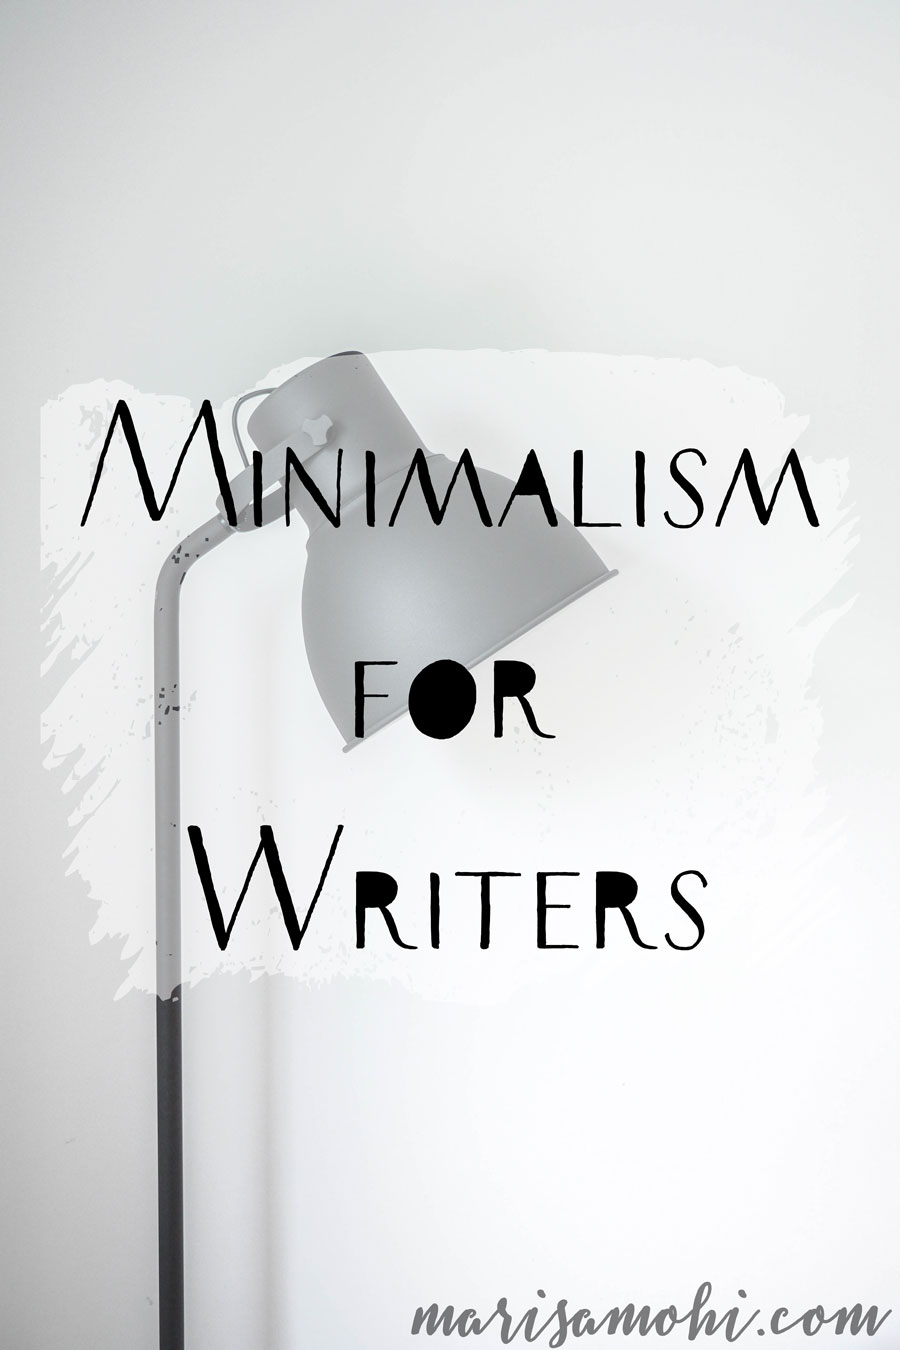 Minimalism for Writers